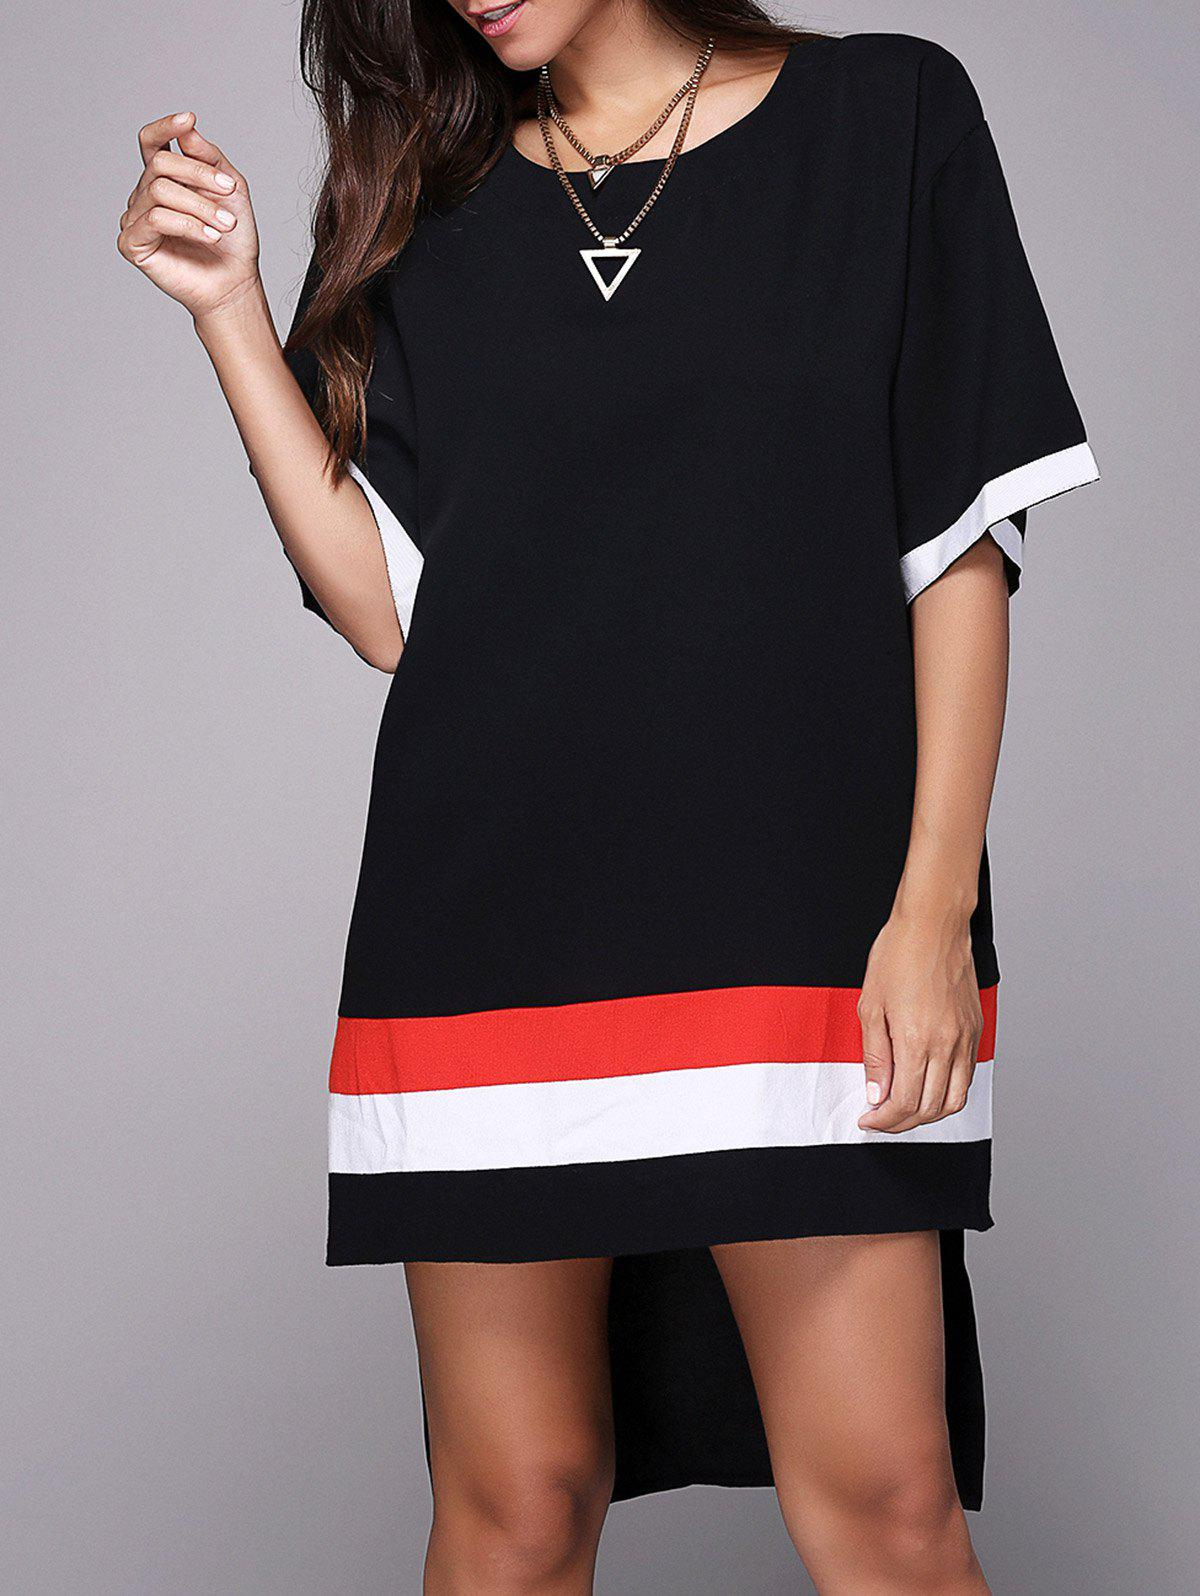 Casual Style Women's Jewel Neck Half Sleeve Loose-Fitting Side Slit T-Shirt